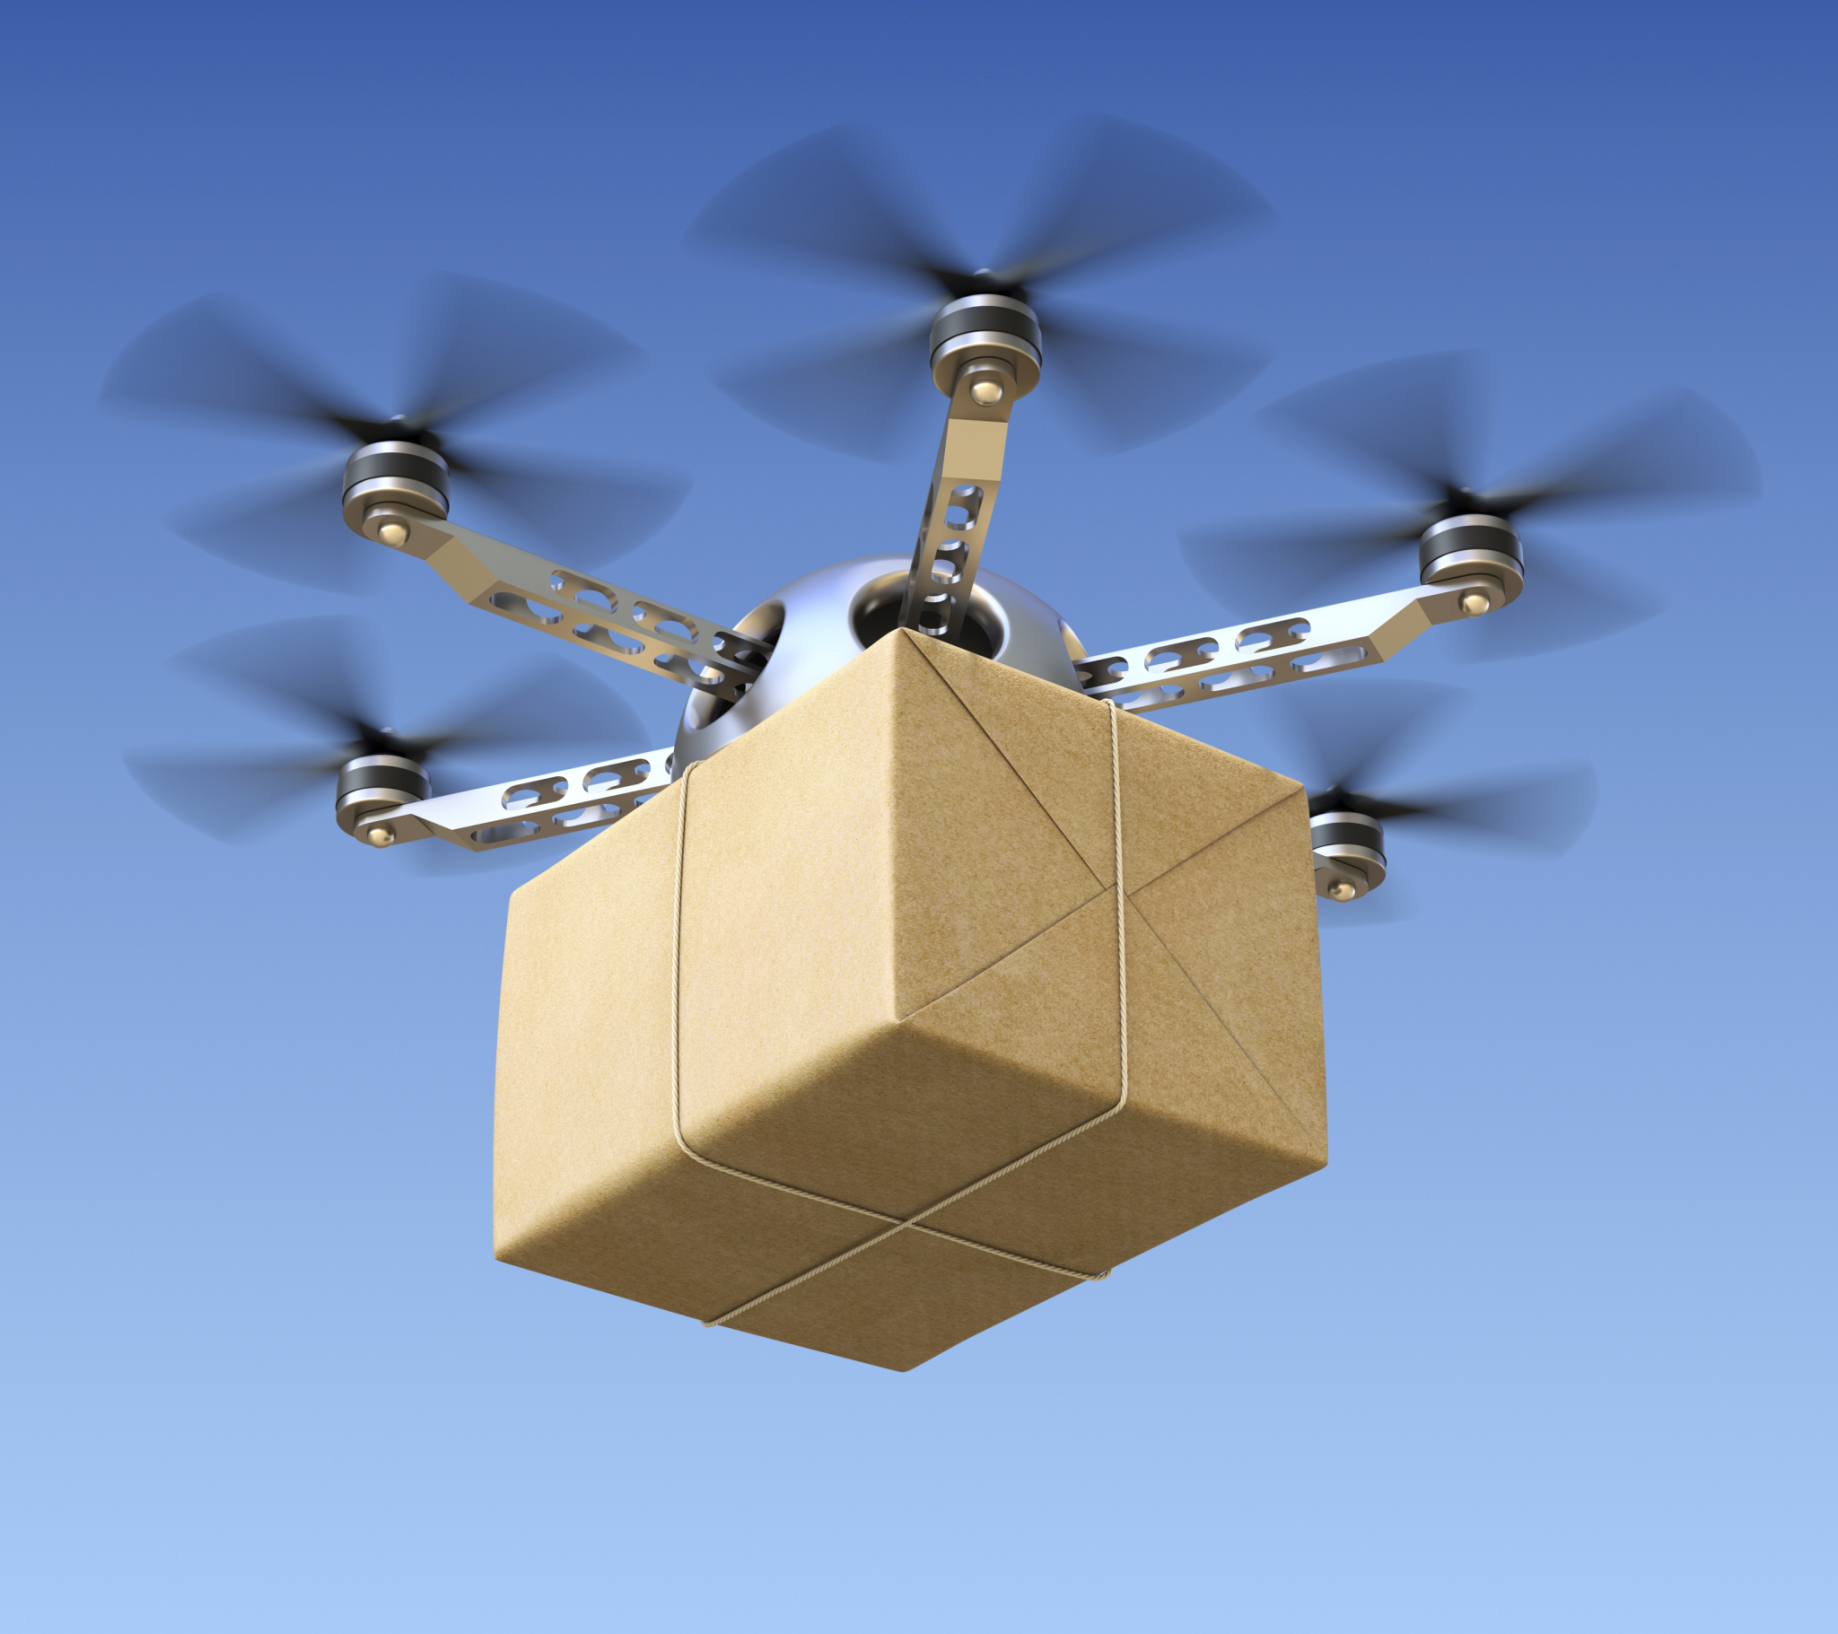 Drones And The Future of Ecommerce - Image 1